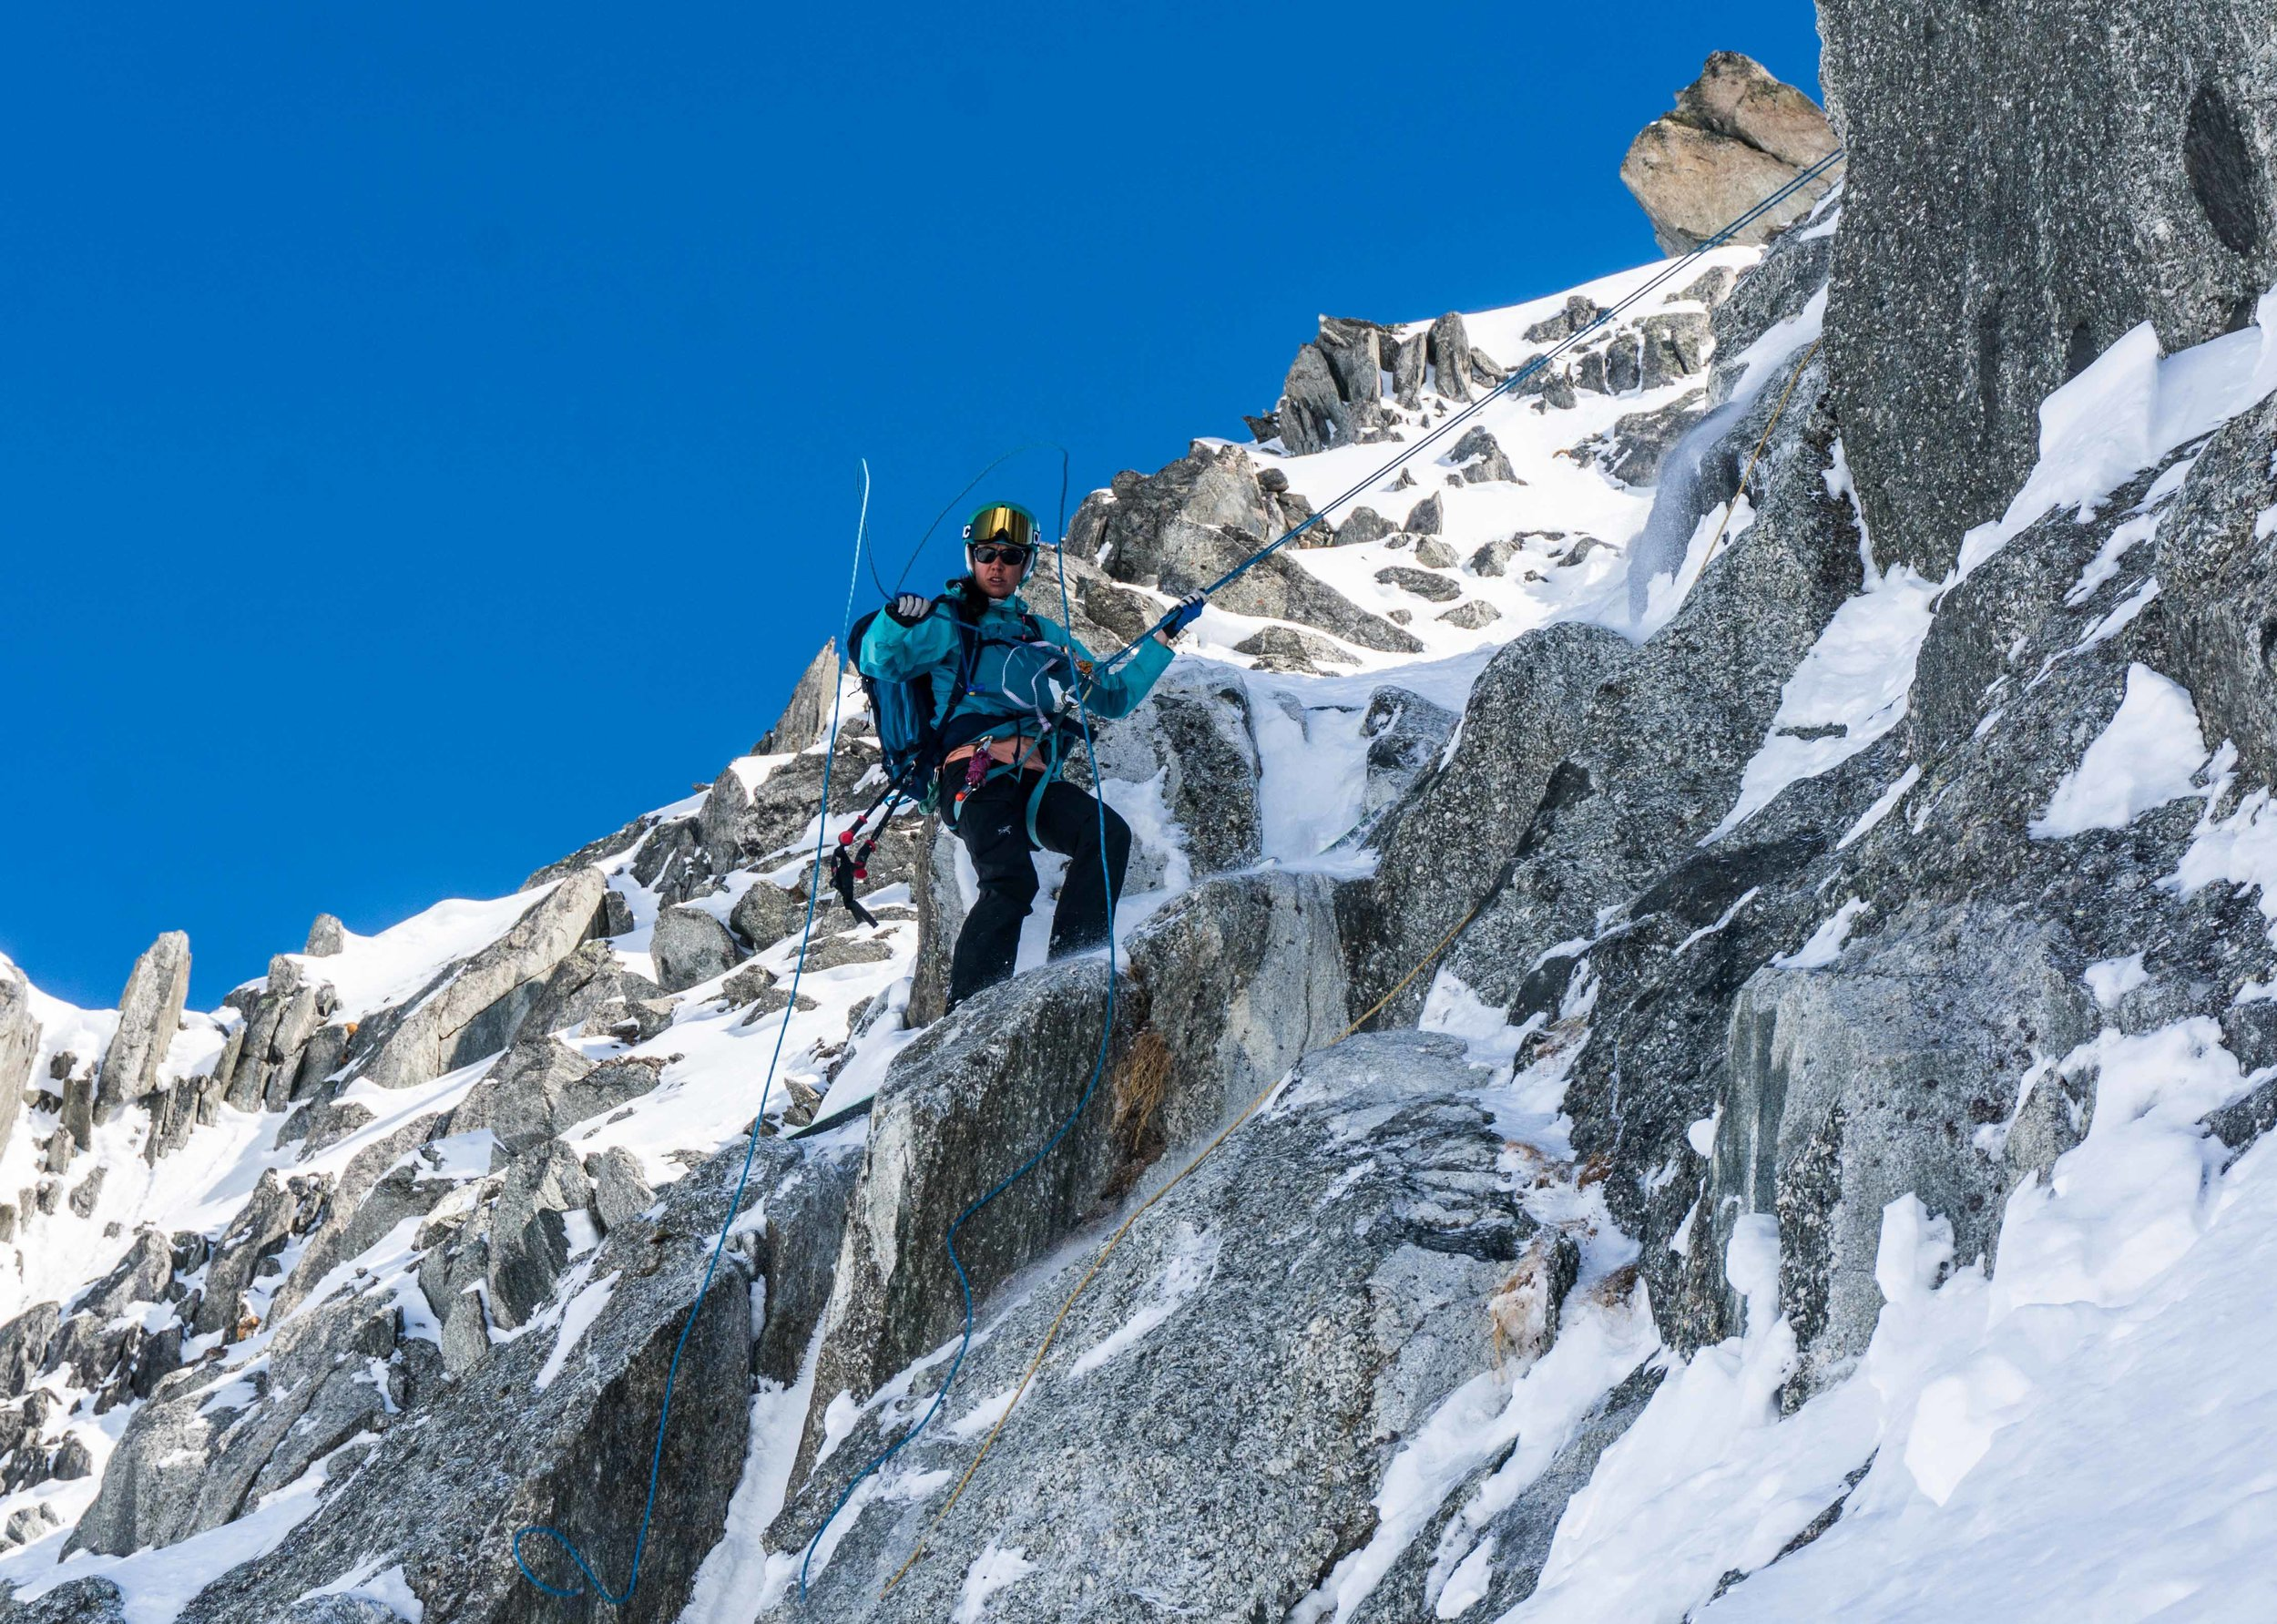 Rappelling into a ski line in Chamonix